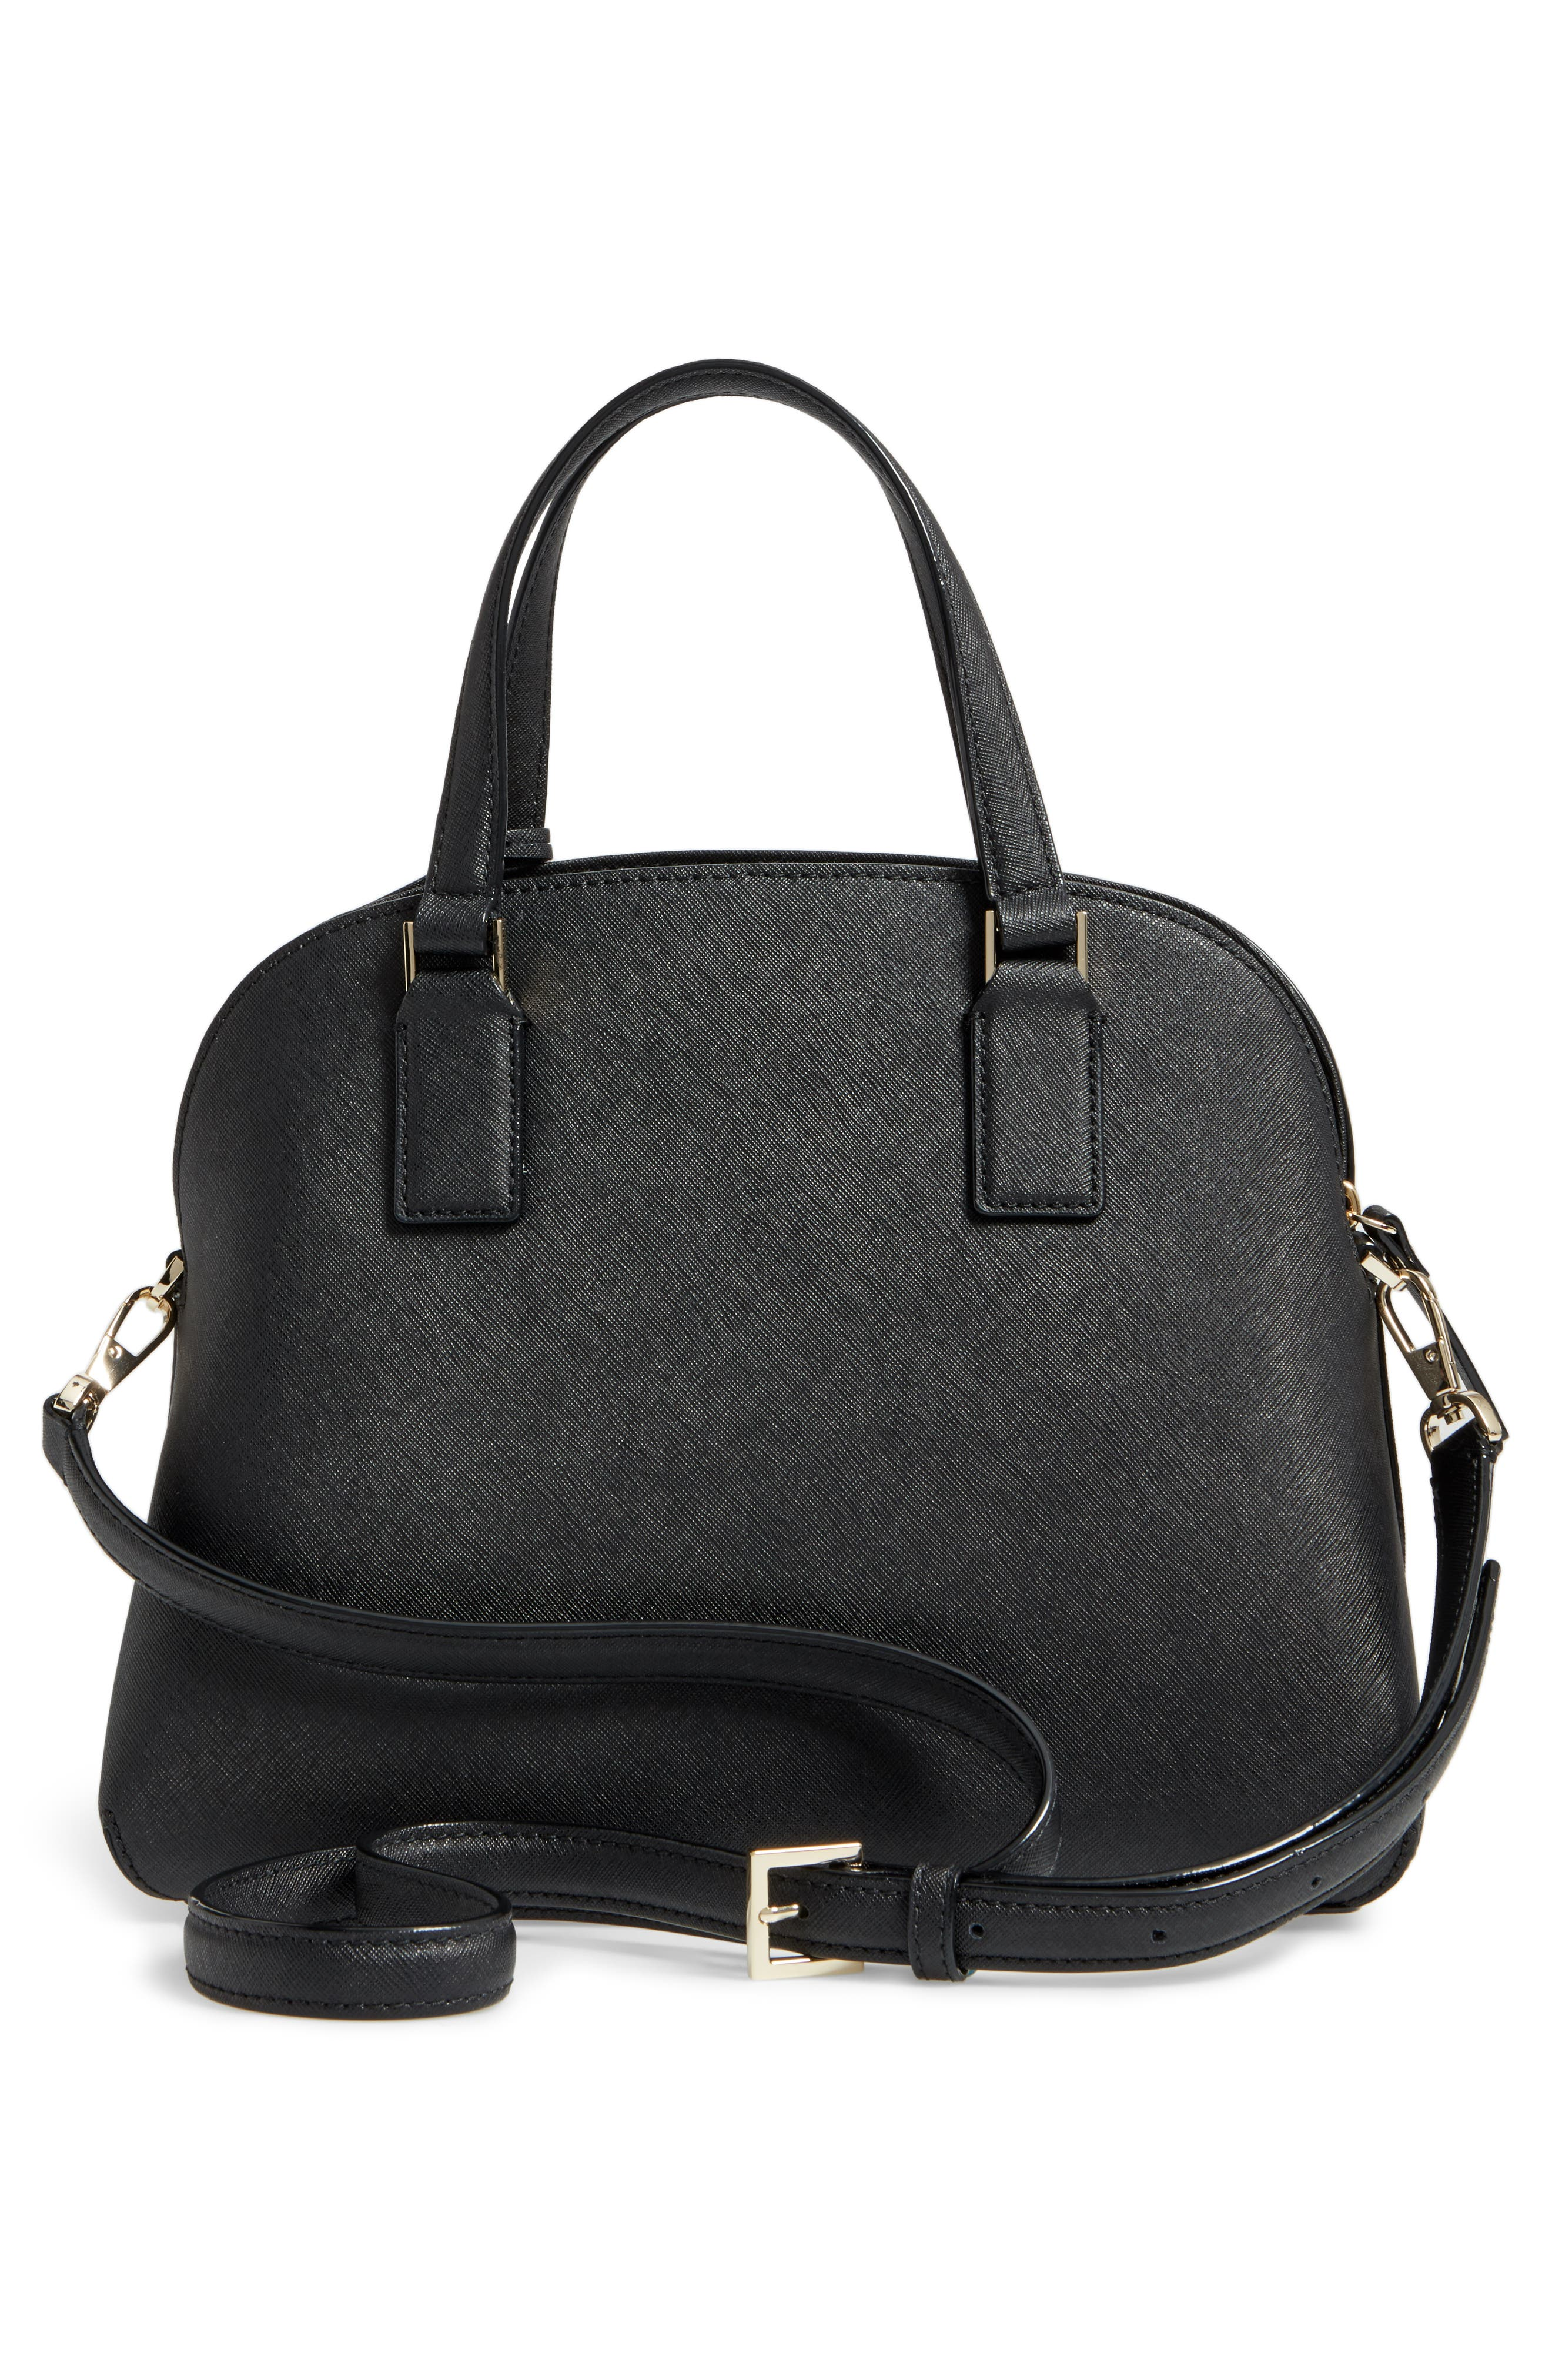 cameron street - lottie leather satchel,                             Alternate thumbnail 3, color,                             001